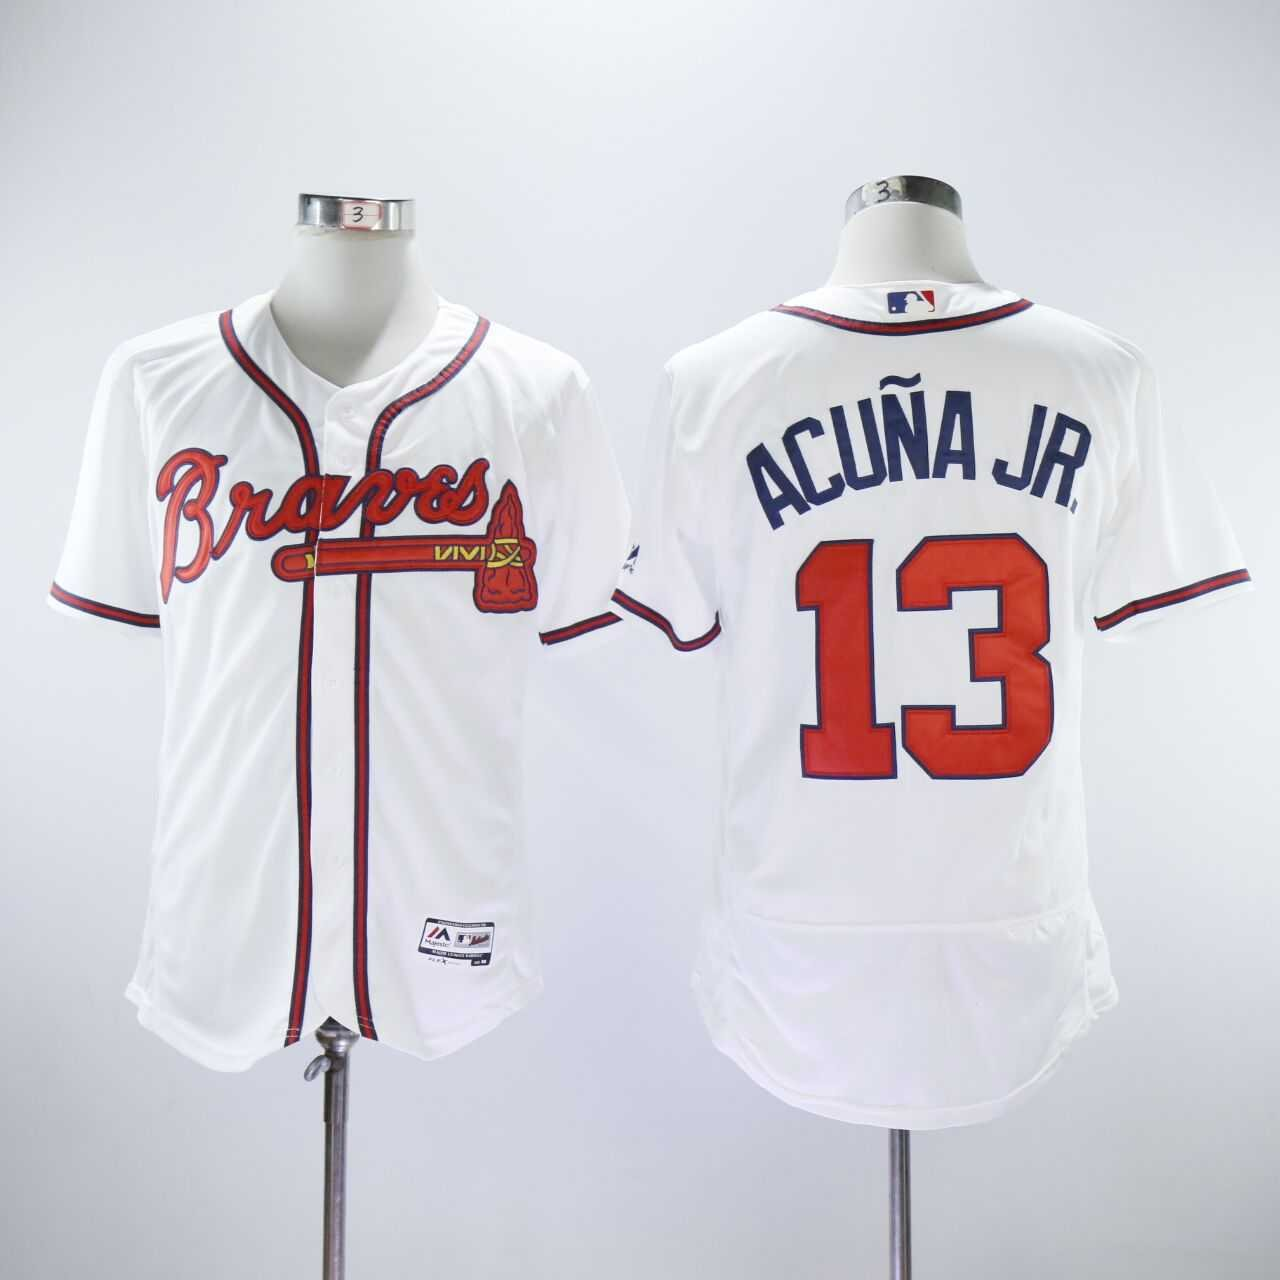 premium selection 7c60c 5dcdd Men's Braves 13 Ronald Acuna Jr. White Embroidered Jersey